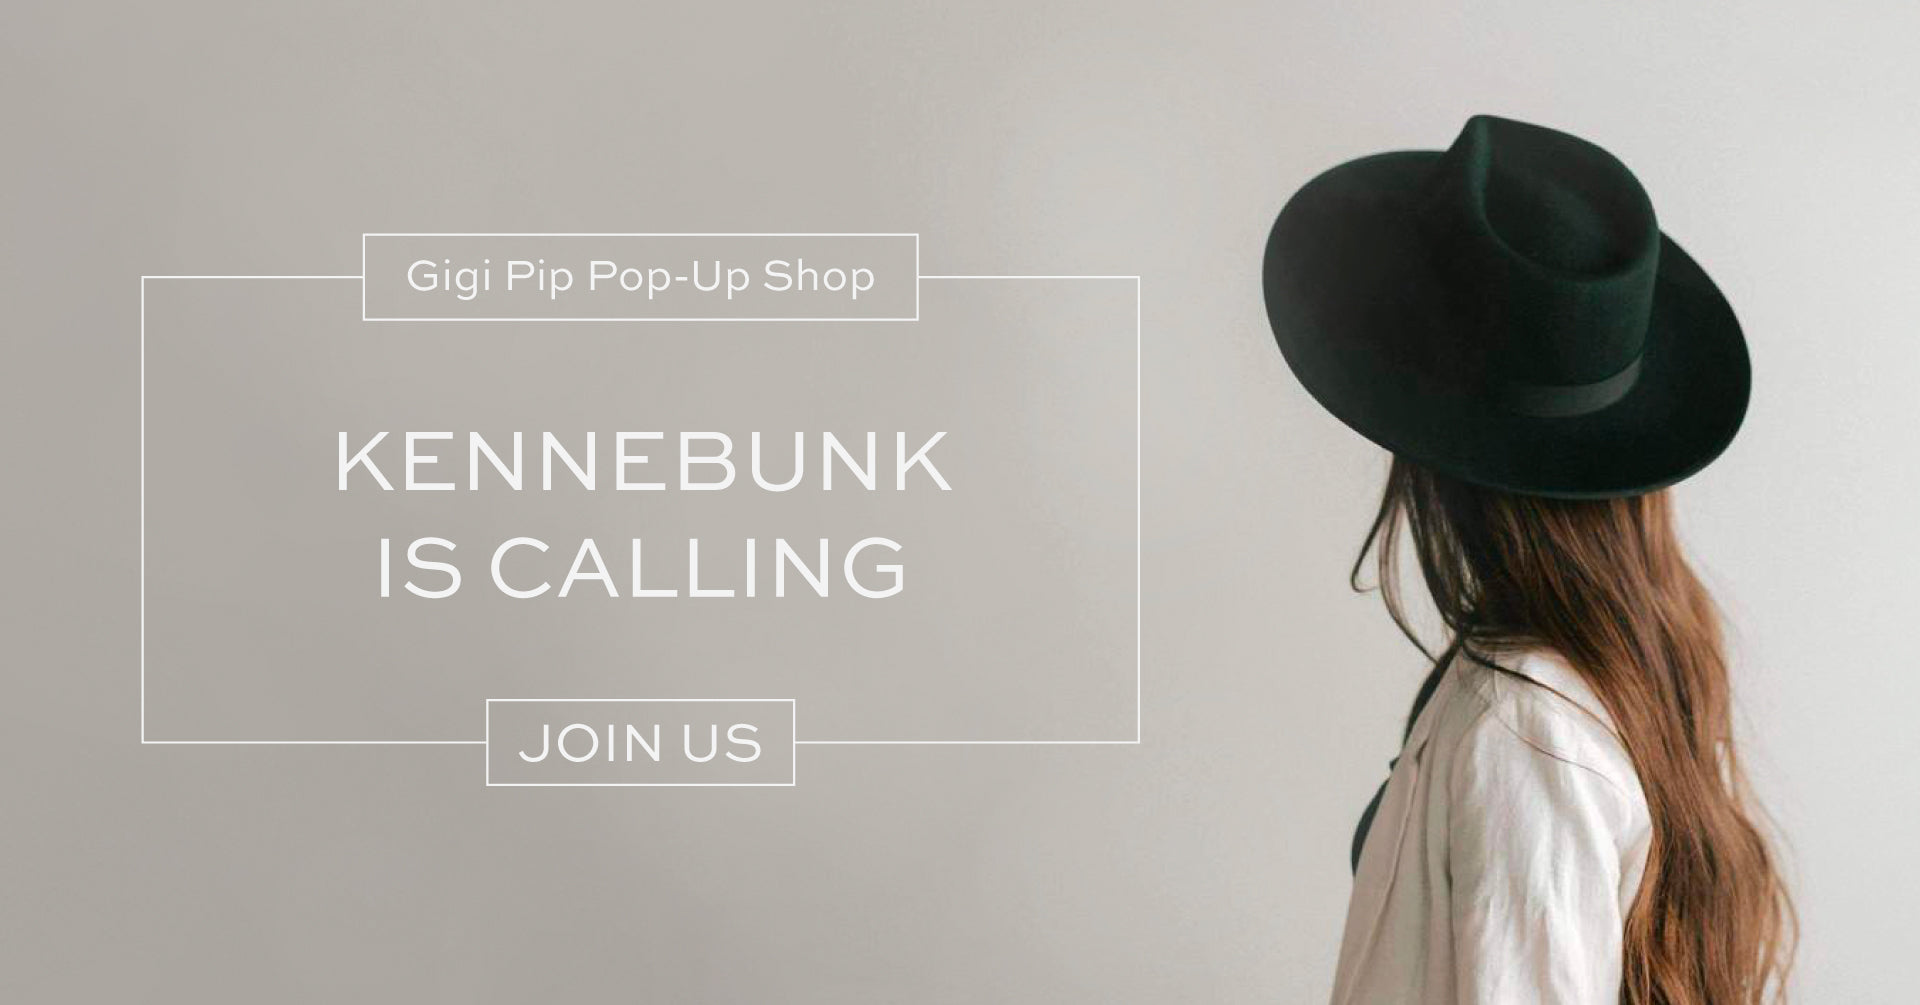 Gigi Pip Pop-Up Event at Bliss Boutiques in Kennebunk, ME